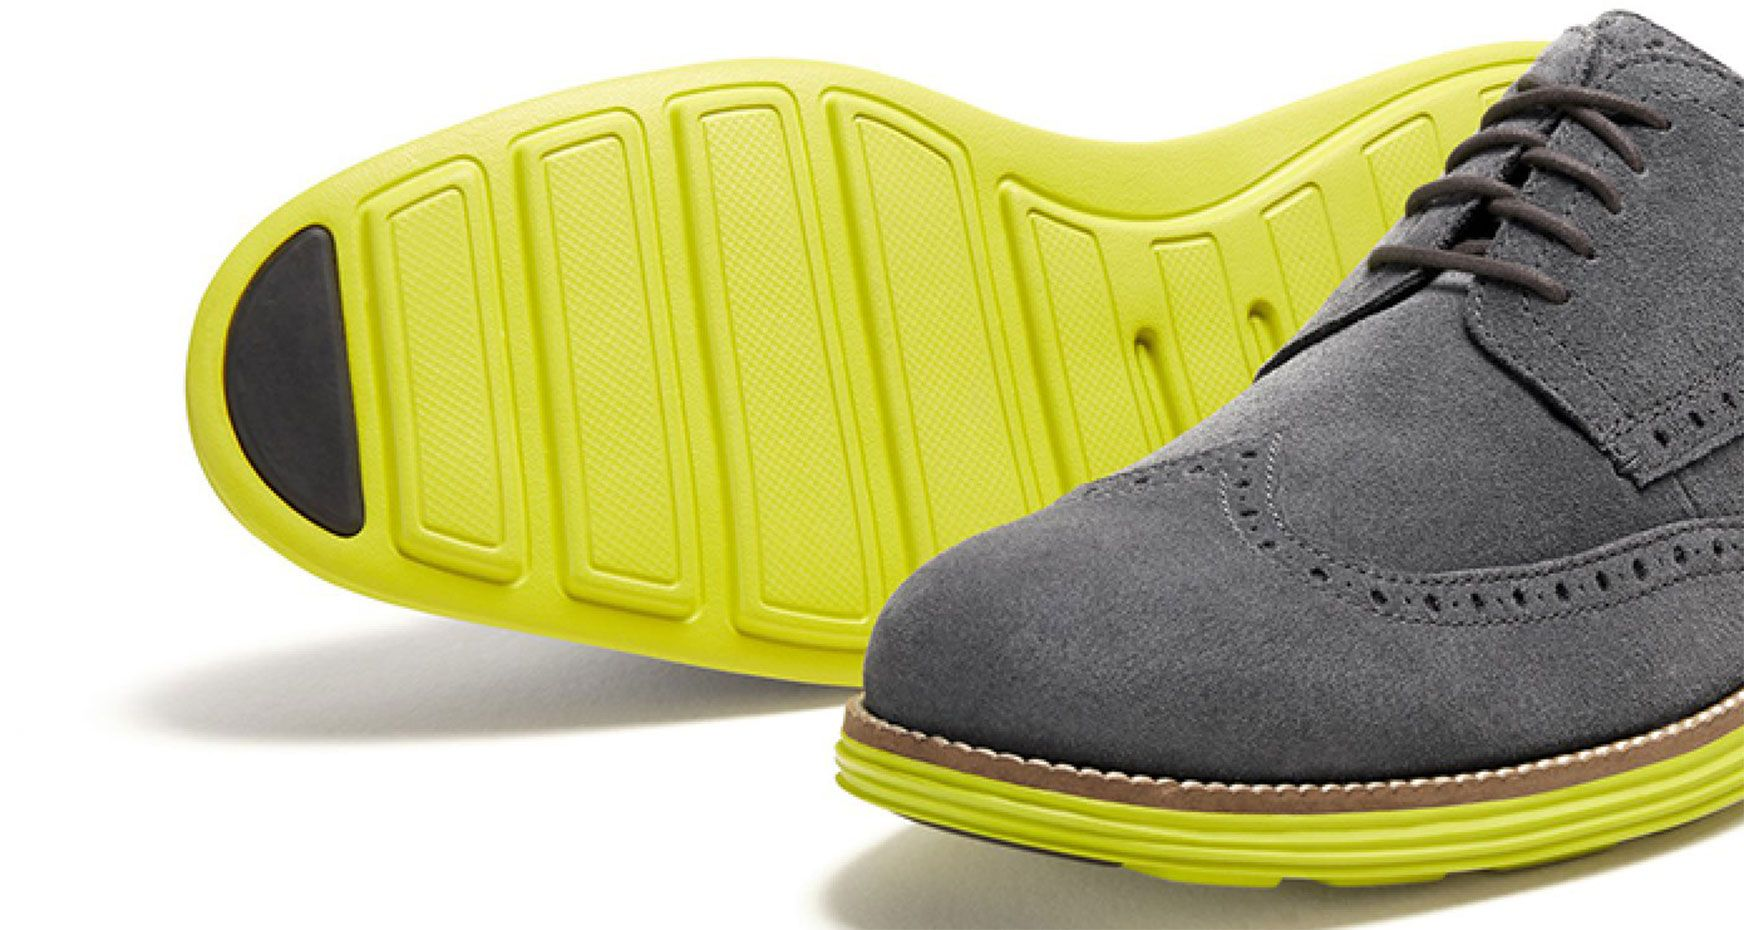 Cole Haan shoe product image